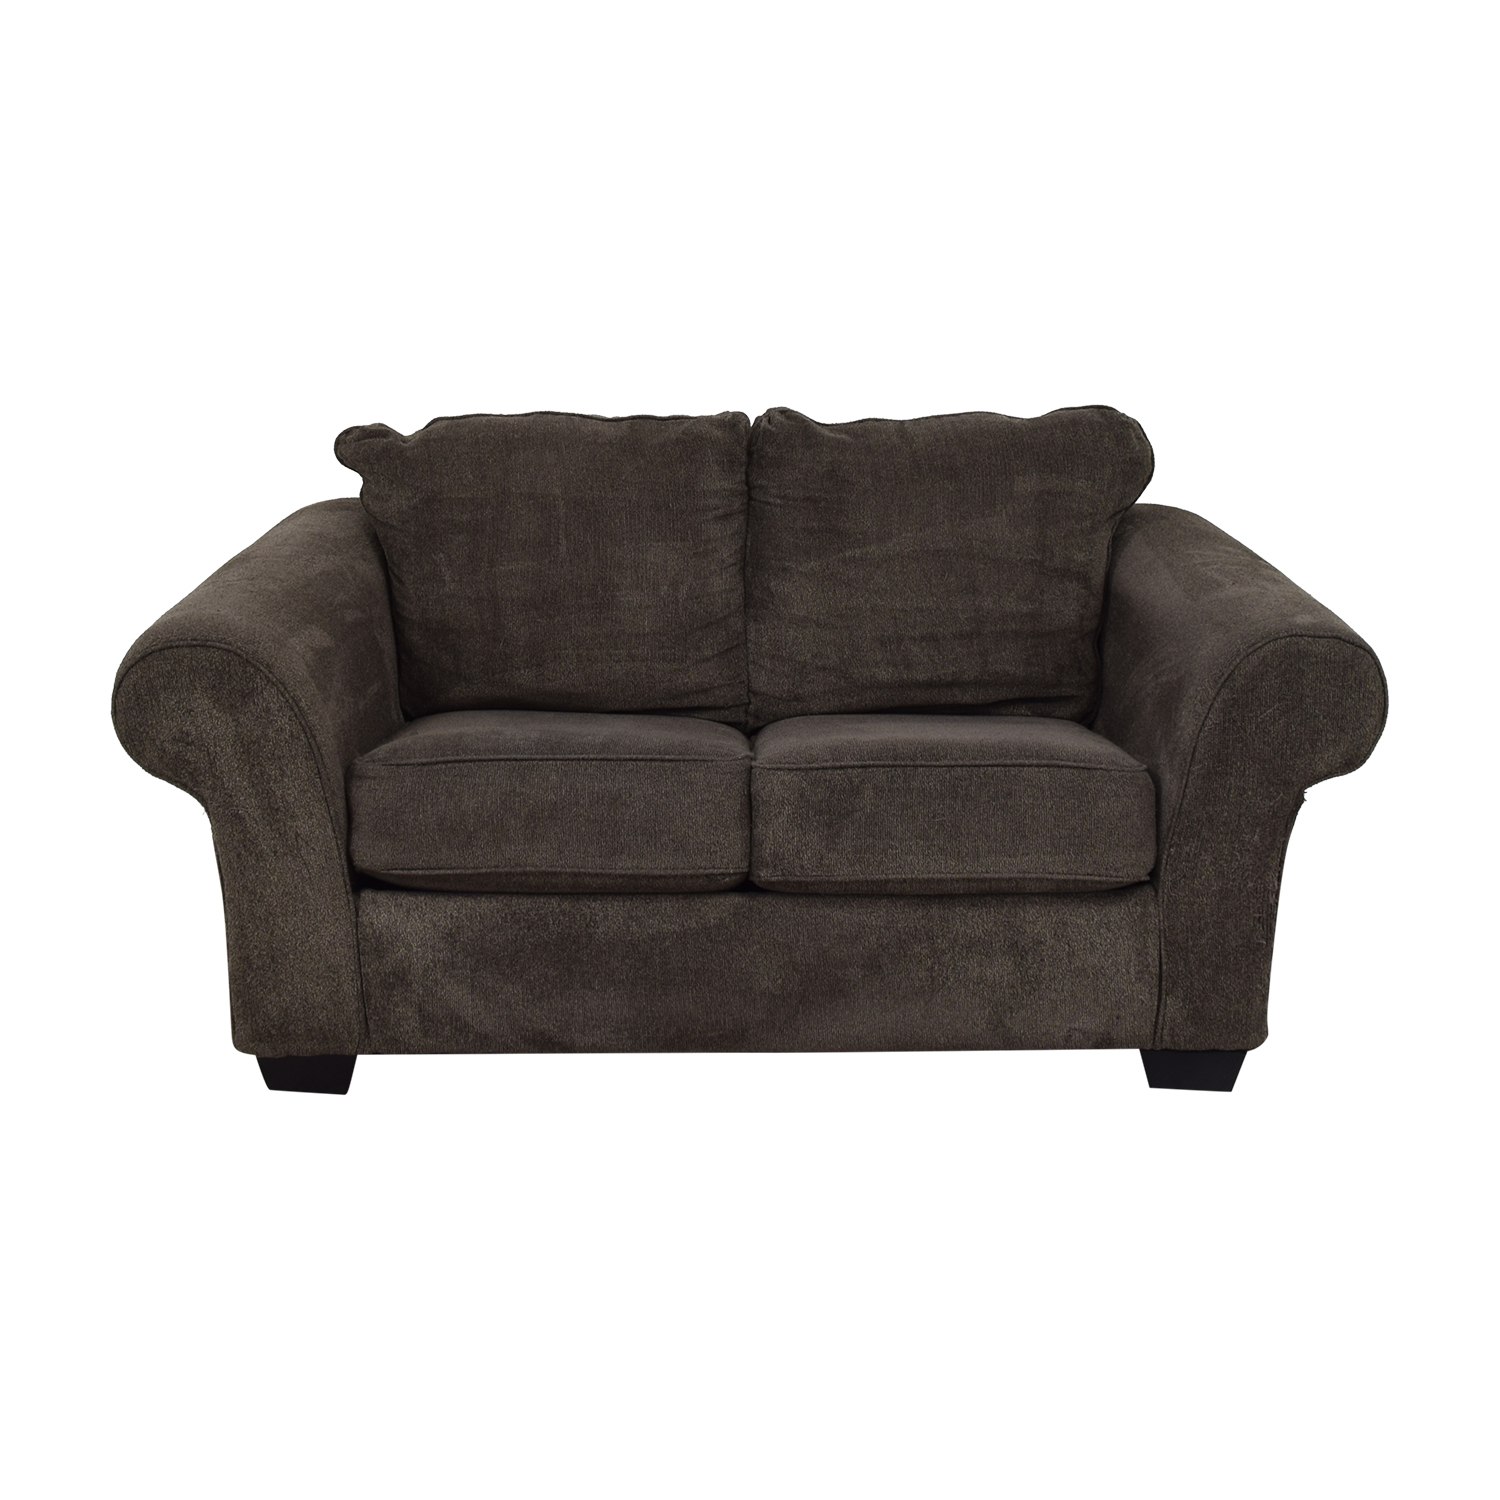 Ashley Furniture Ashley Furniture Grey Microfiber Two Cushion Loveseat discount